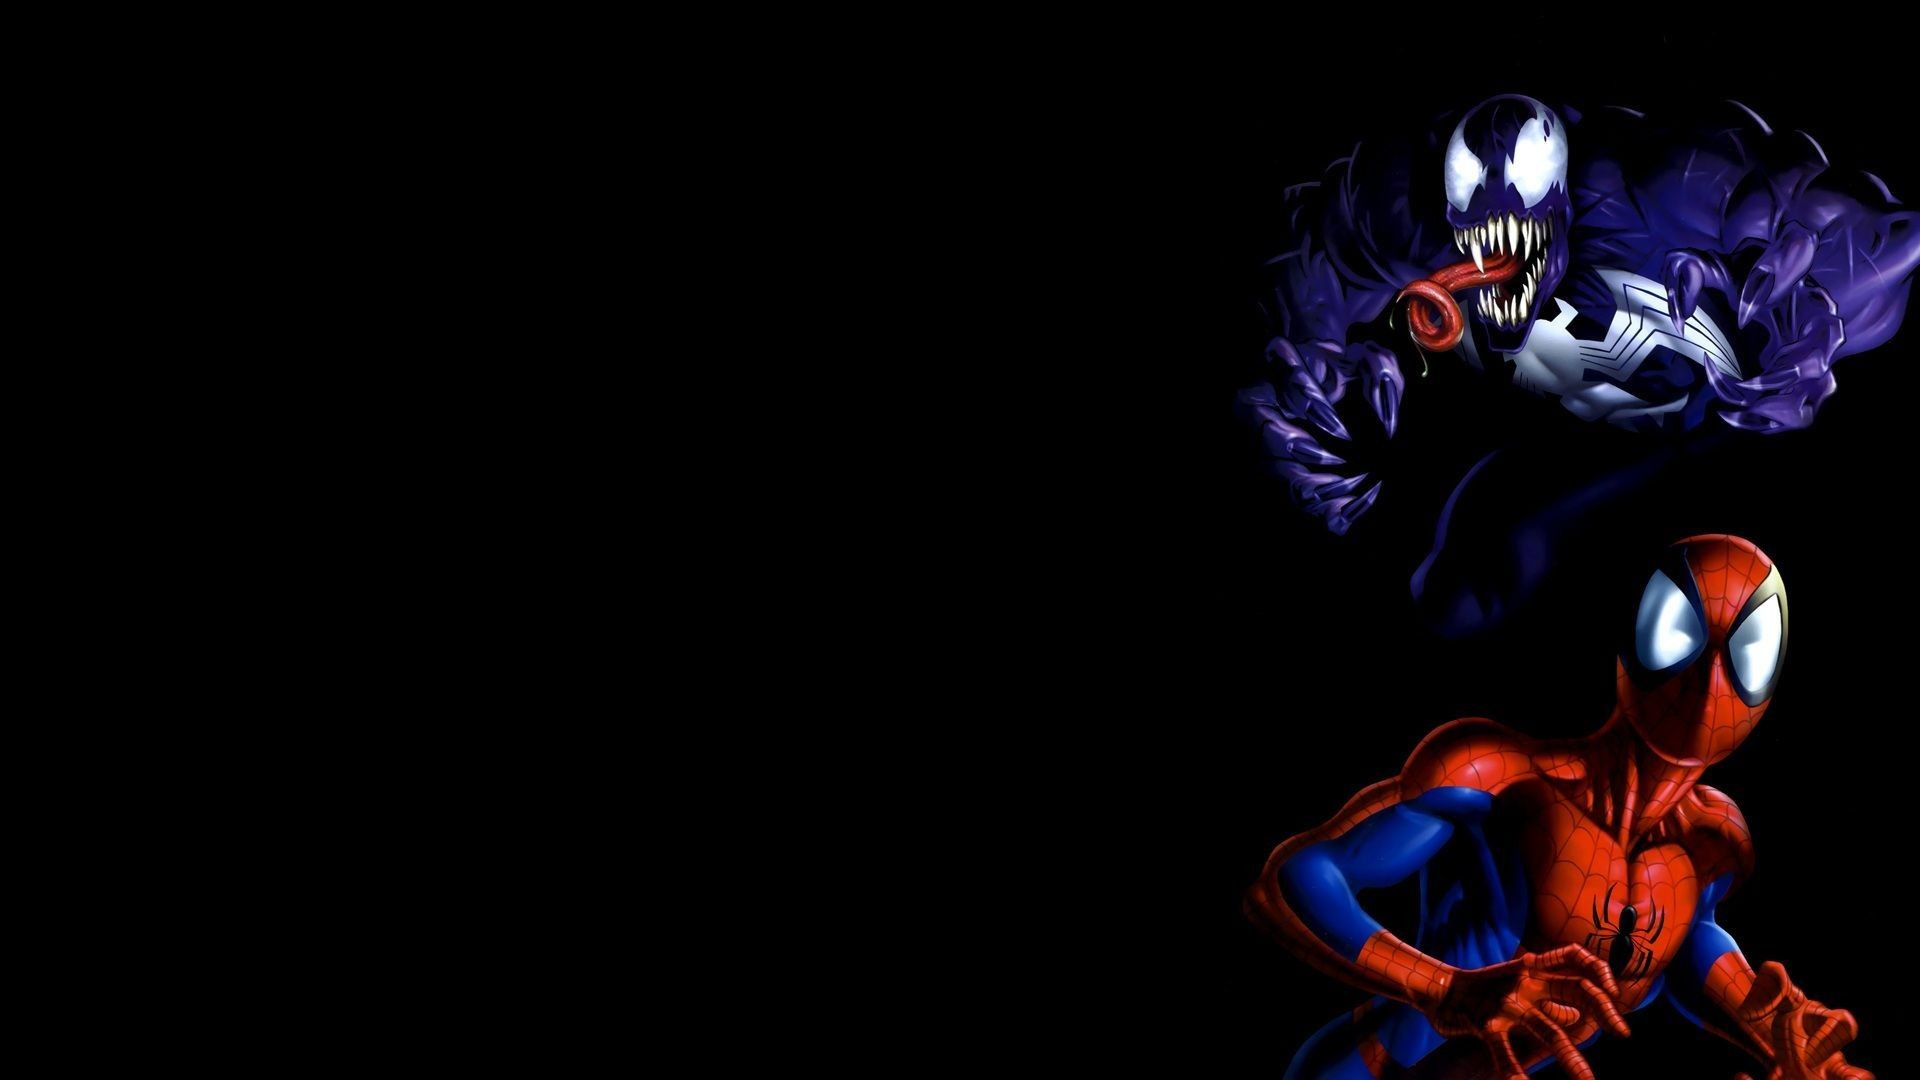 Venom Vs Carnage Wallpaper Images with HD Wallpaper Resolution px  81.34 KB Movies Thunderbolts Anti